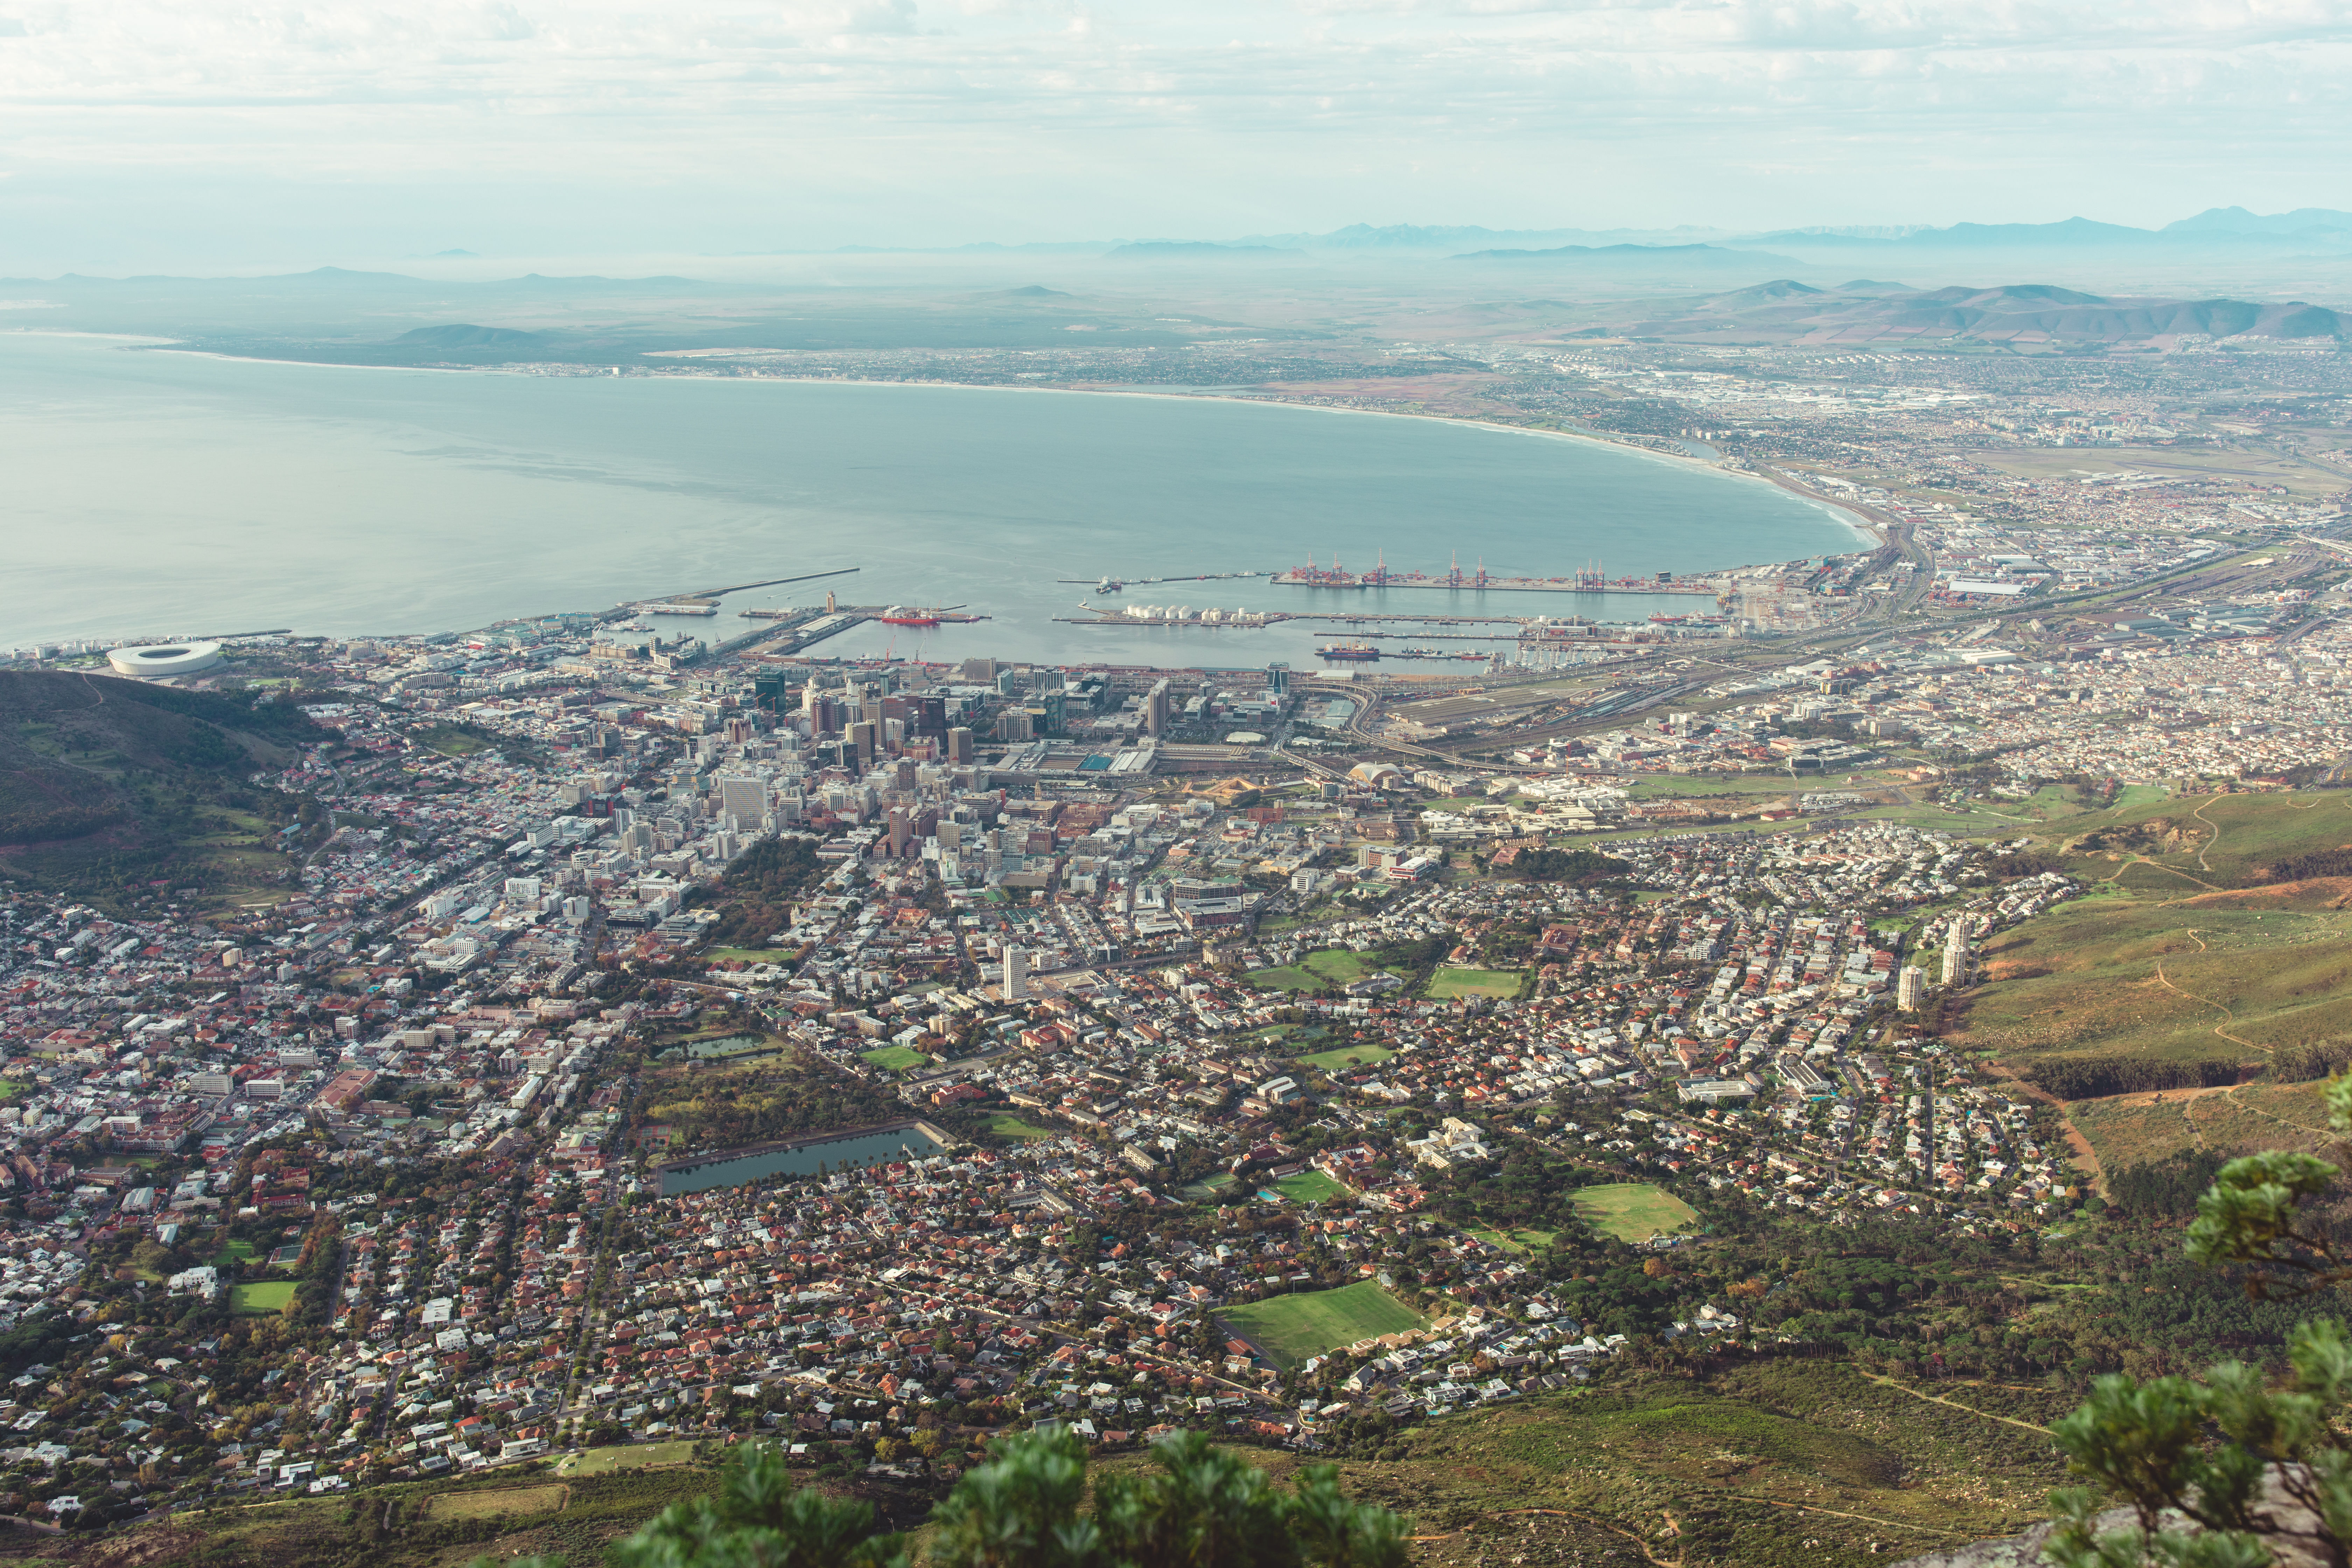 Vista view of Cape Town, South Africa